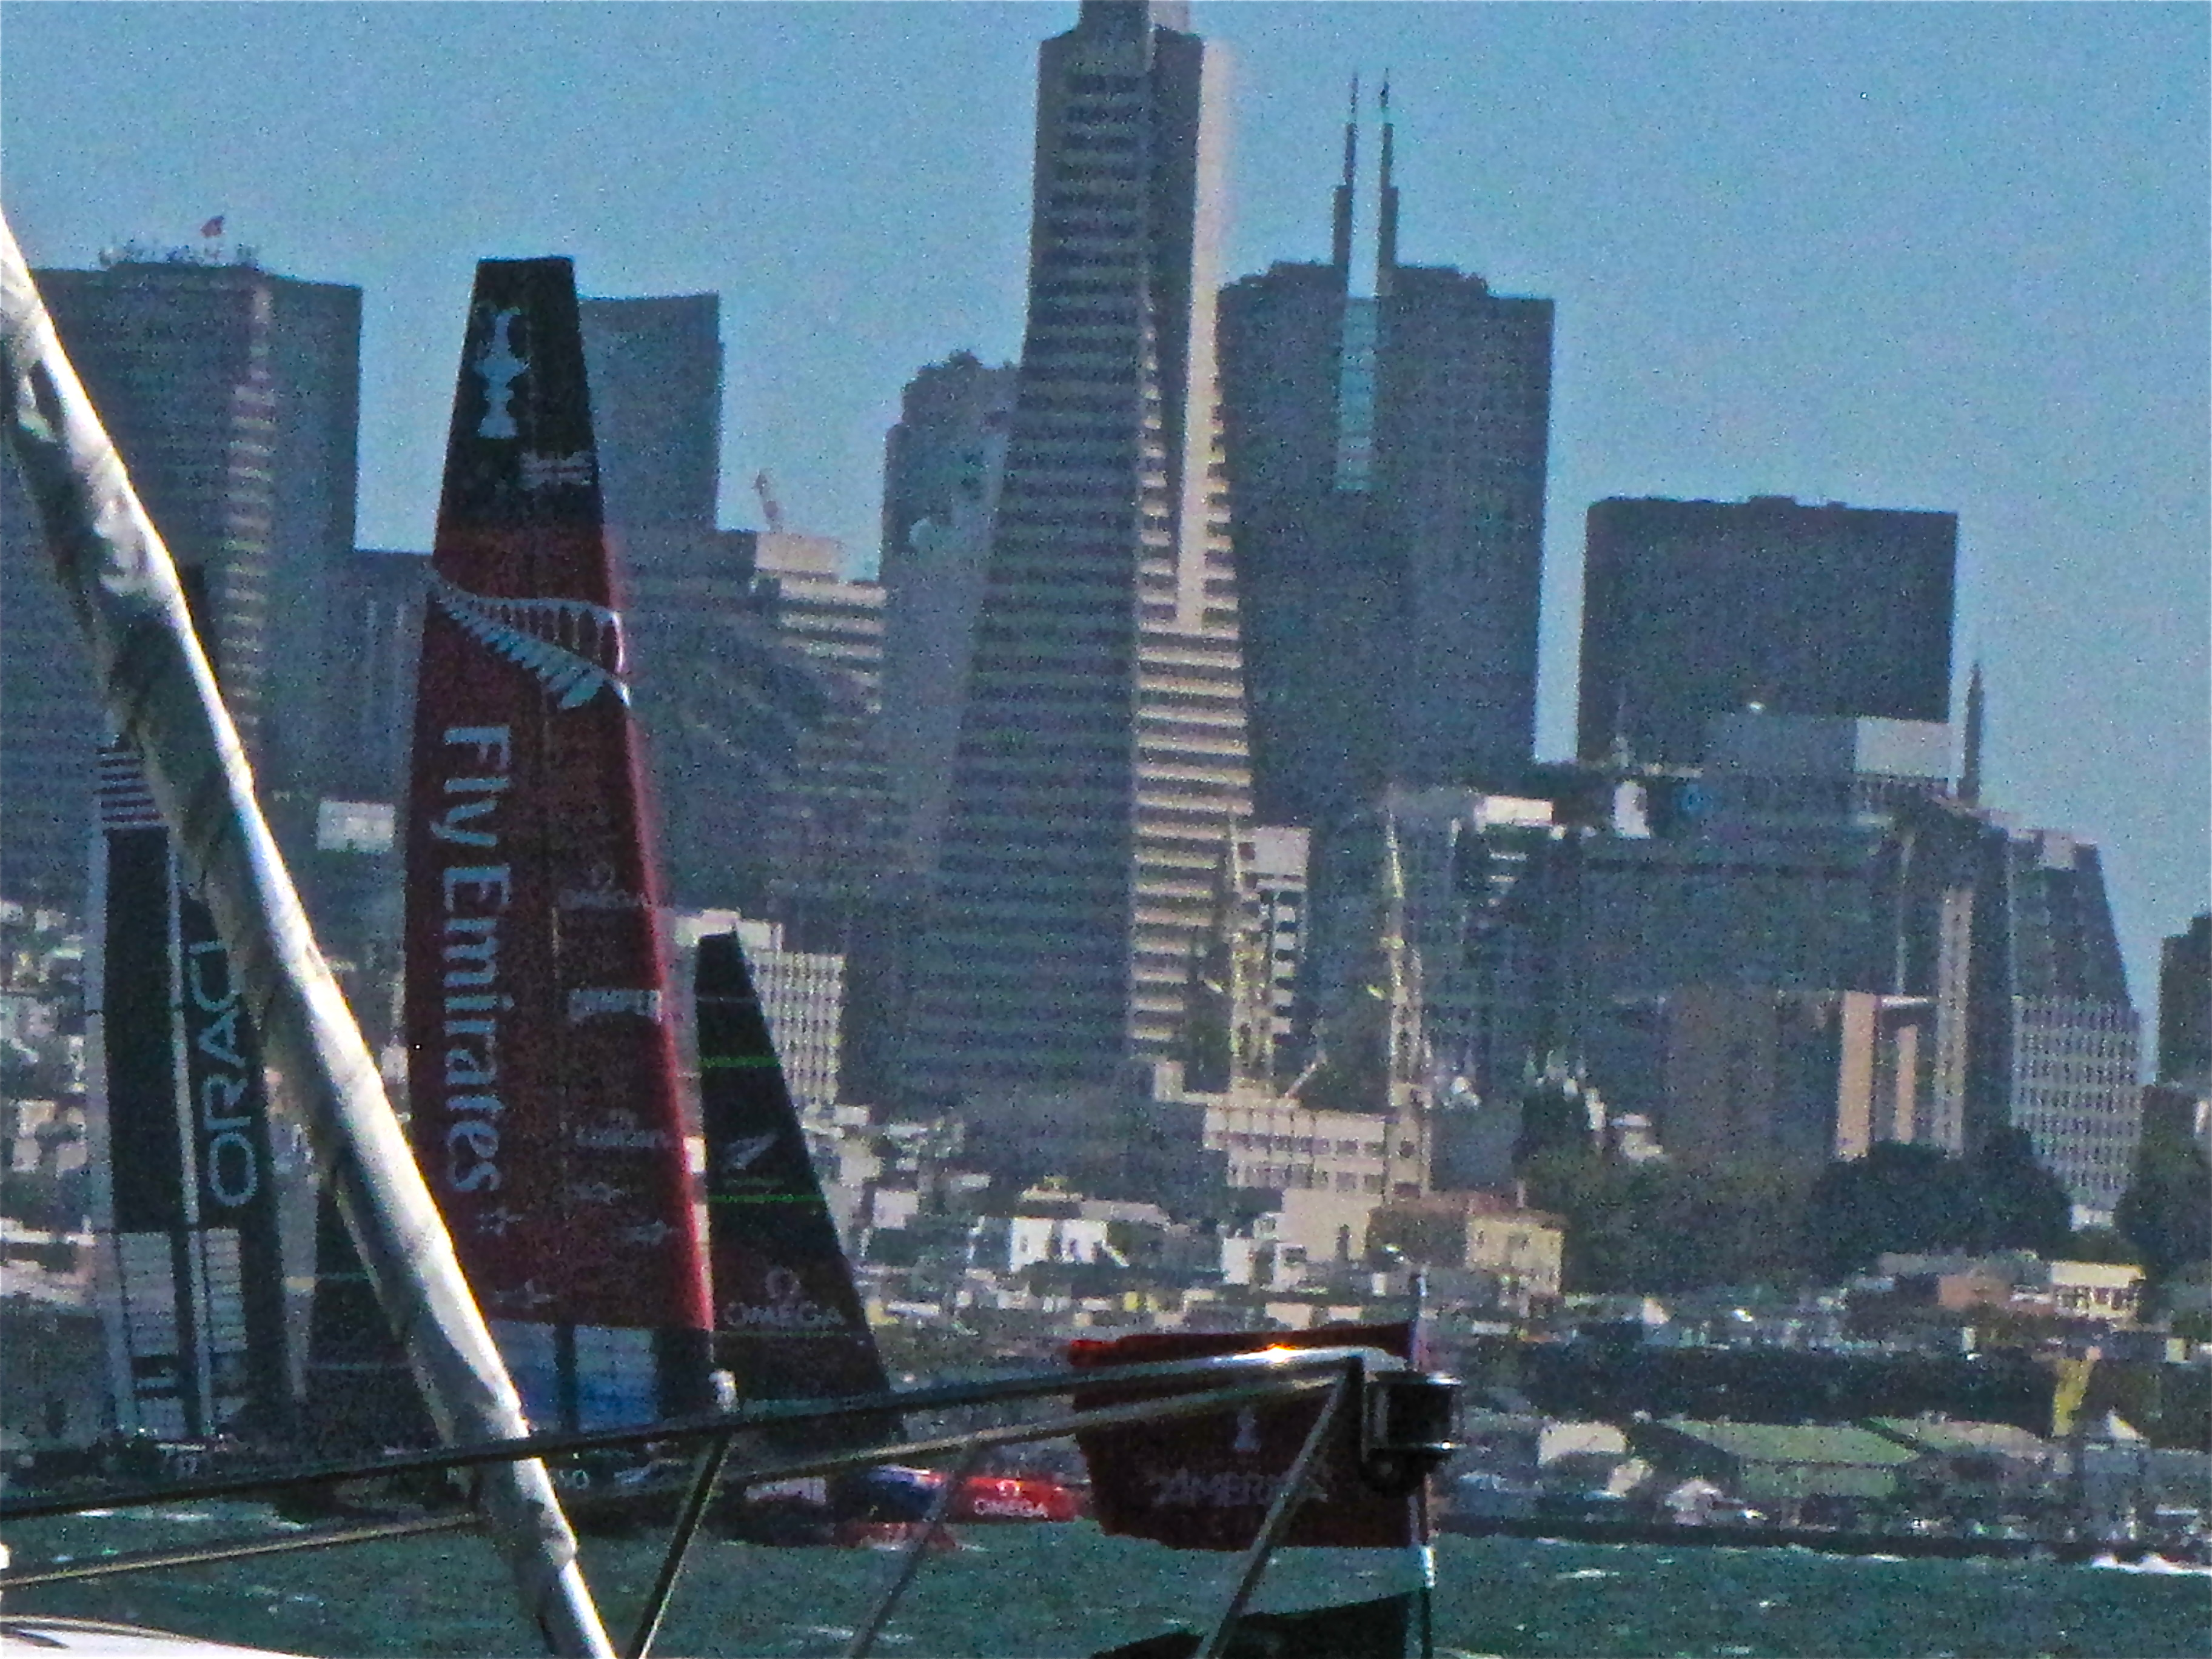 America's Cup Adventure by Land and Sea